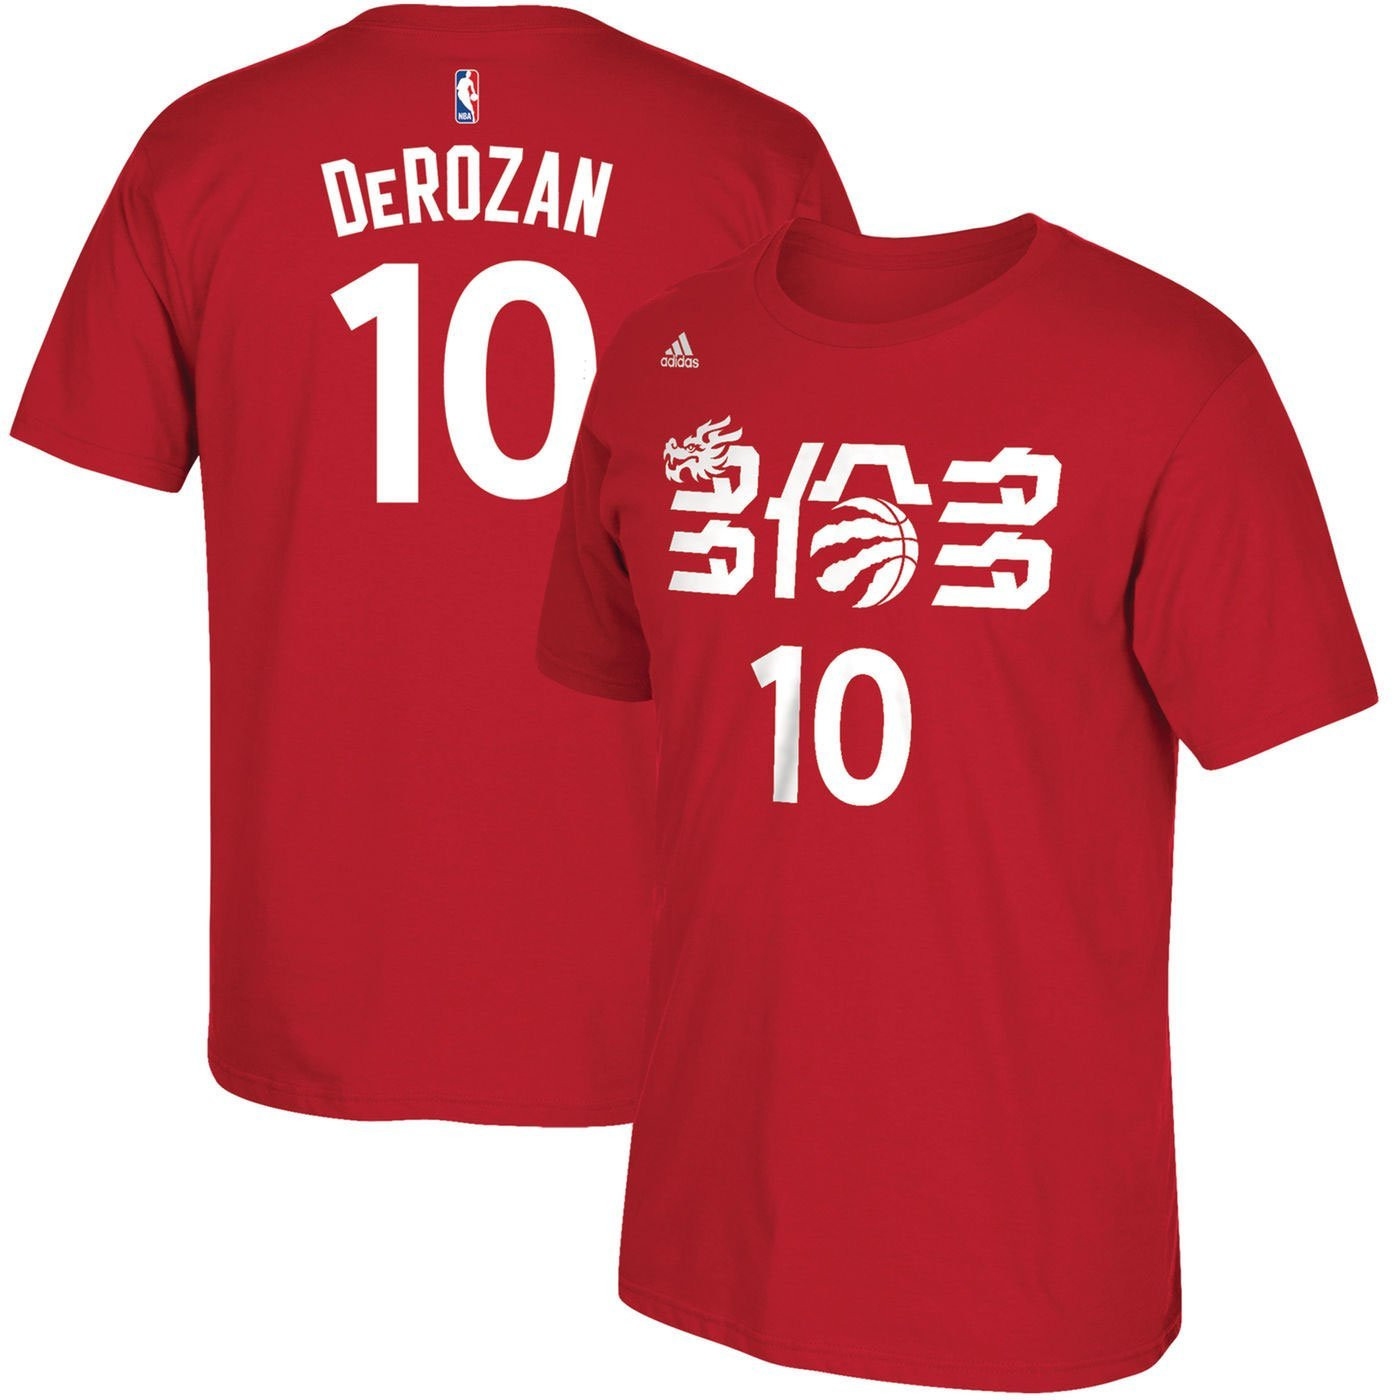 2c548555f Get Quotations · Toronto Raptors Chinese New Year DeMar DeRozan NBA Name    Number T-Shirt - Red